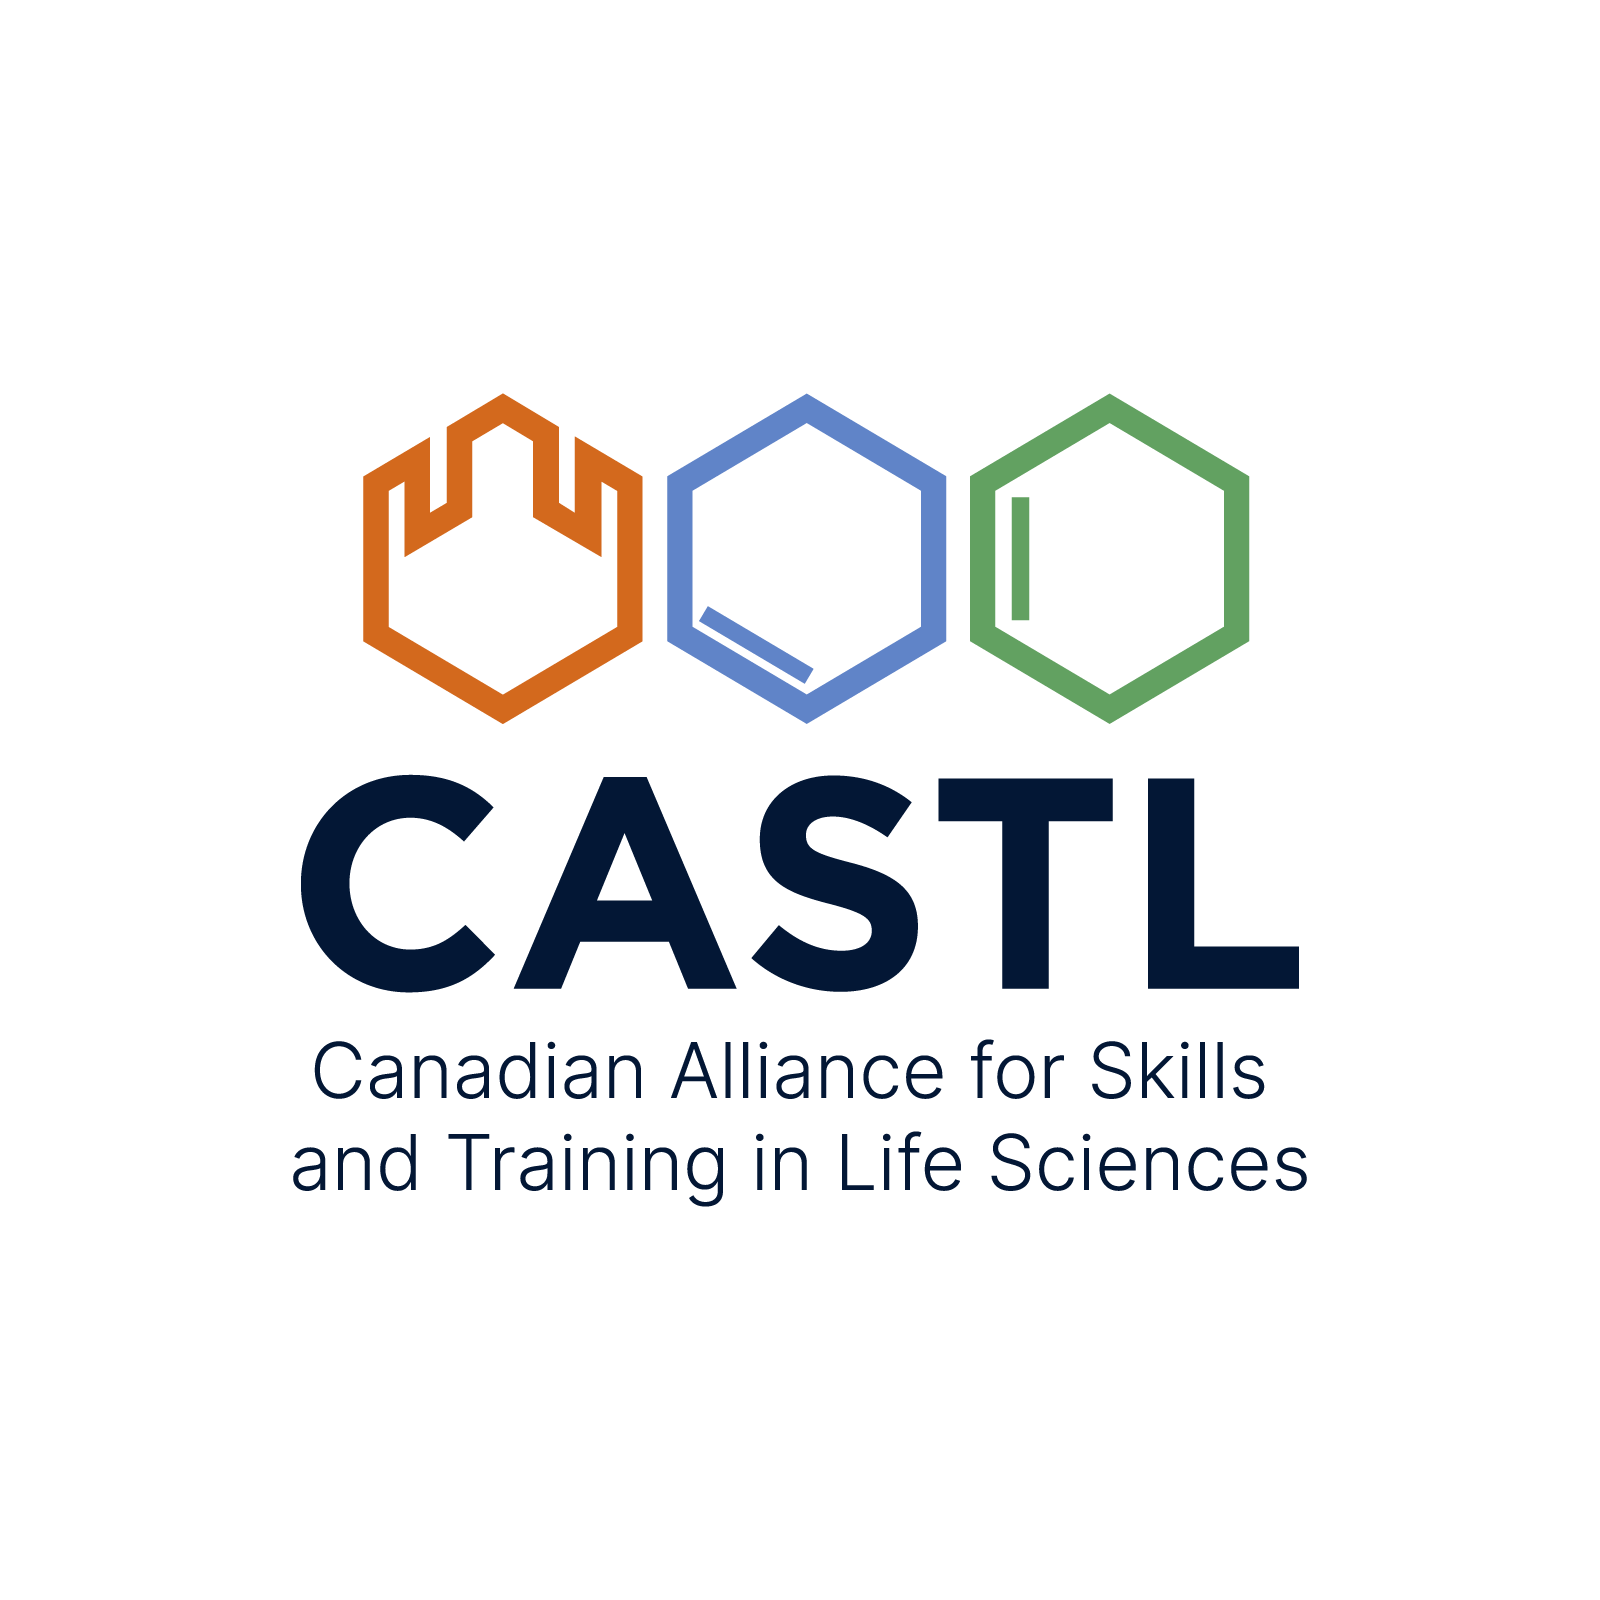 Canadian Alliance for Skills and Training in Life Sciences logo